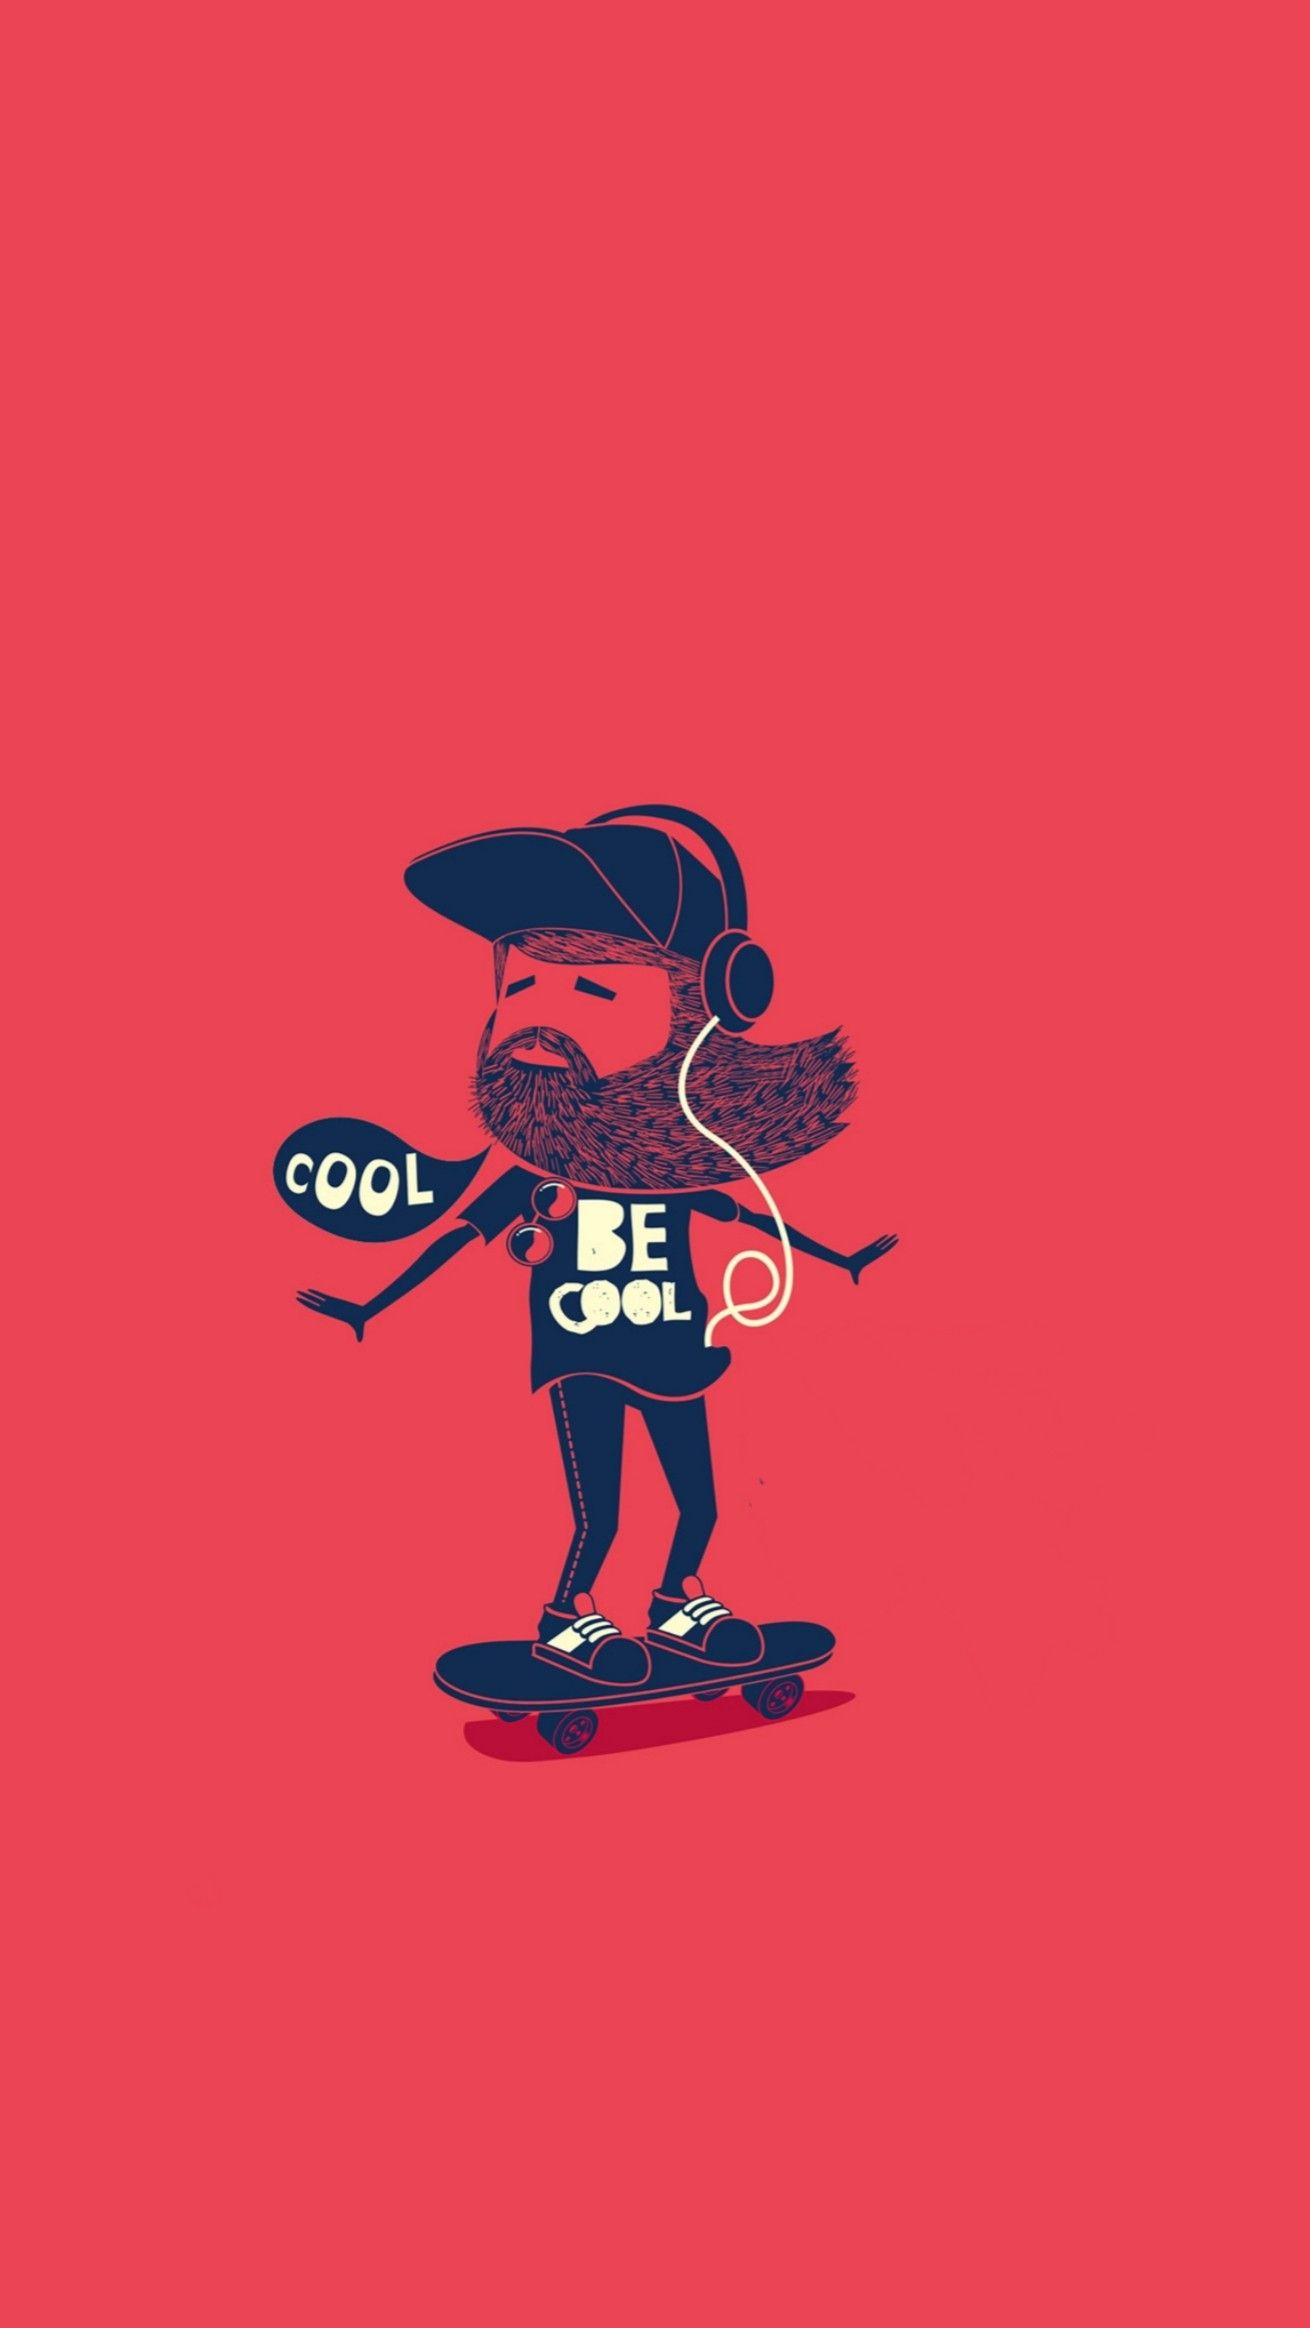 Be Cool Hd Wallpaper For Iphone In 2021 Ilustration Art Art Amazing Hd Wallpapers